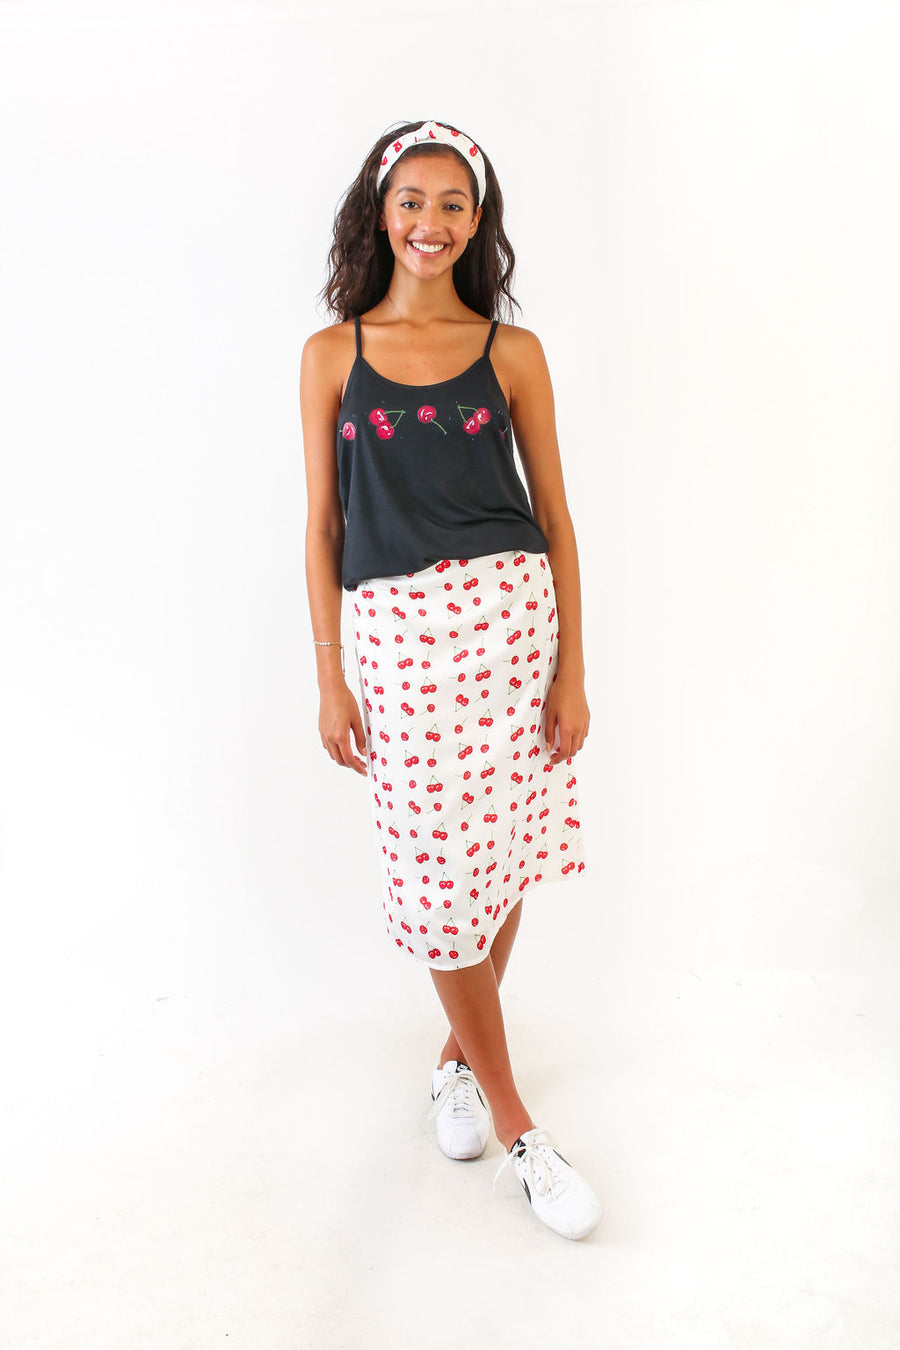 SARAH TANK TOP BLACK WITH CHERRIES *LIMITED*EDITION*